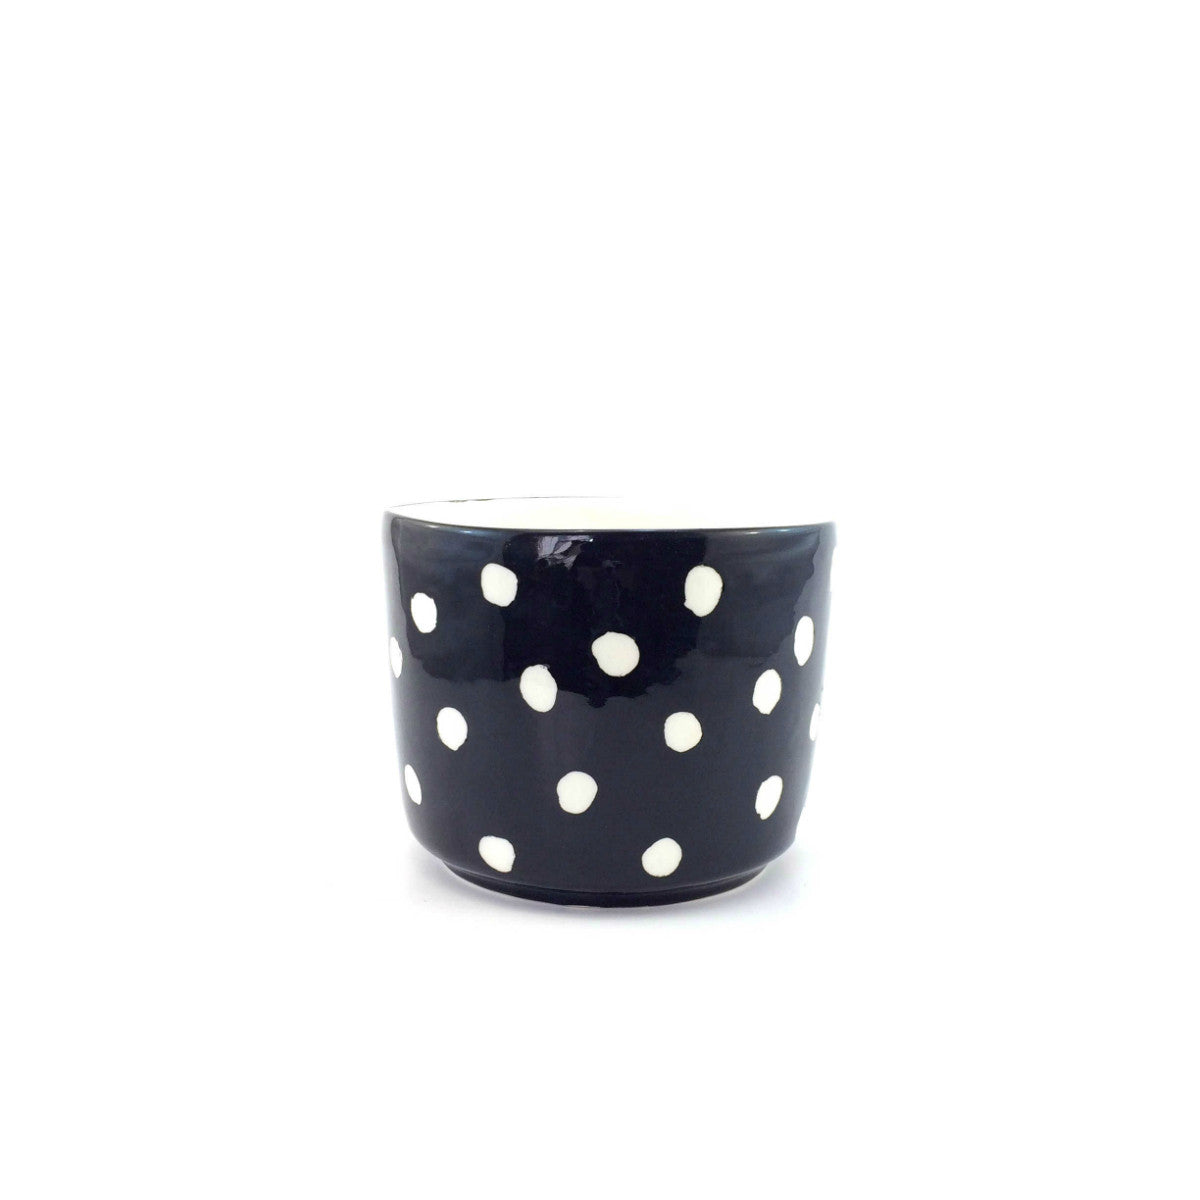 Polka Dot Pot - Black & White